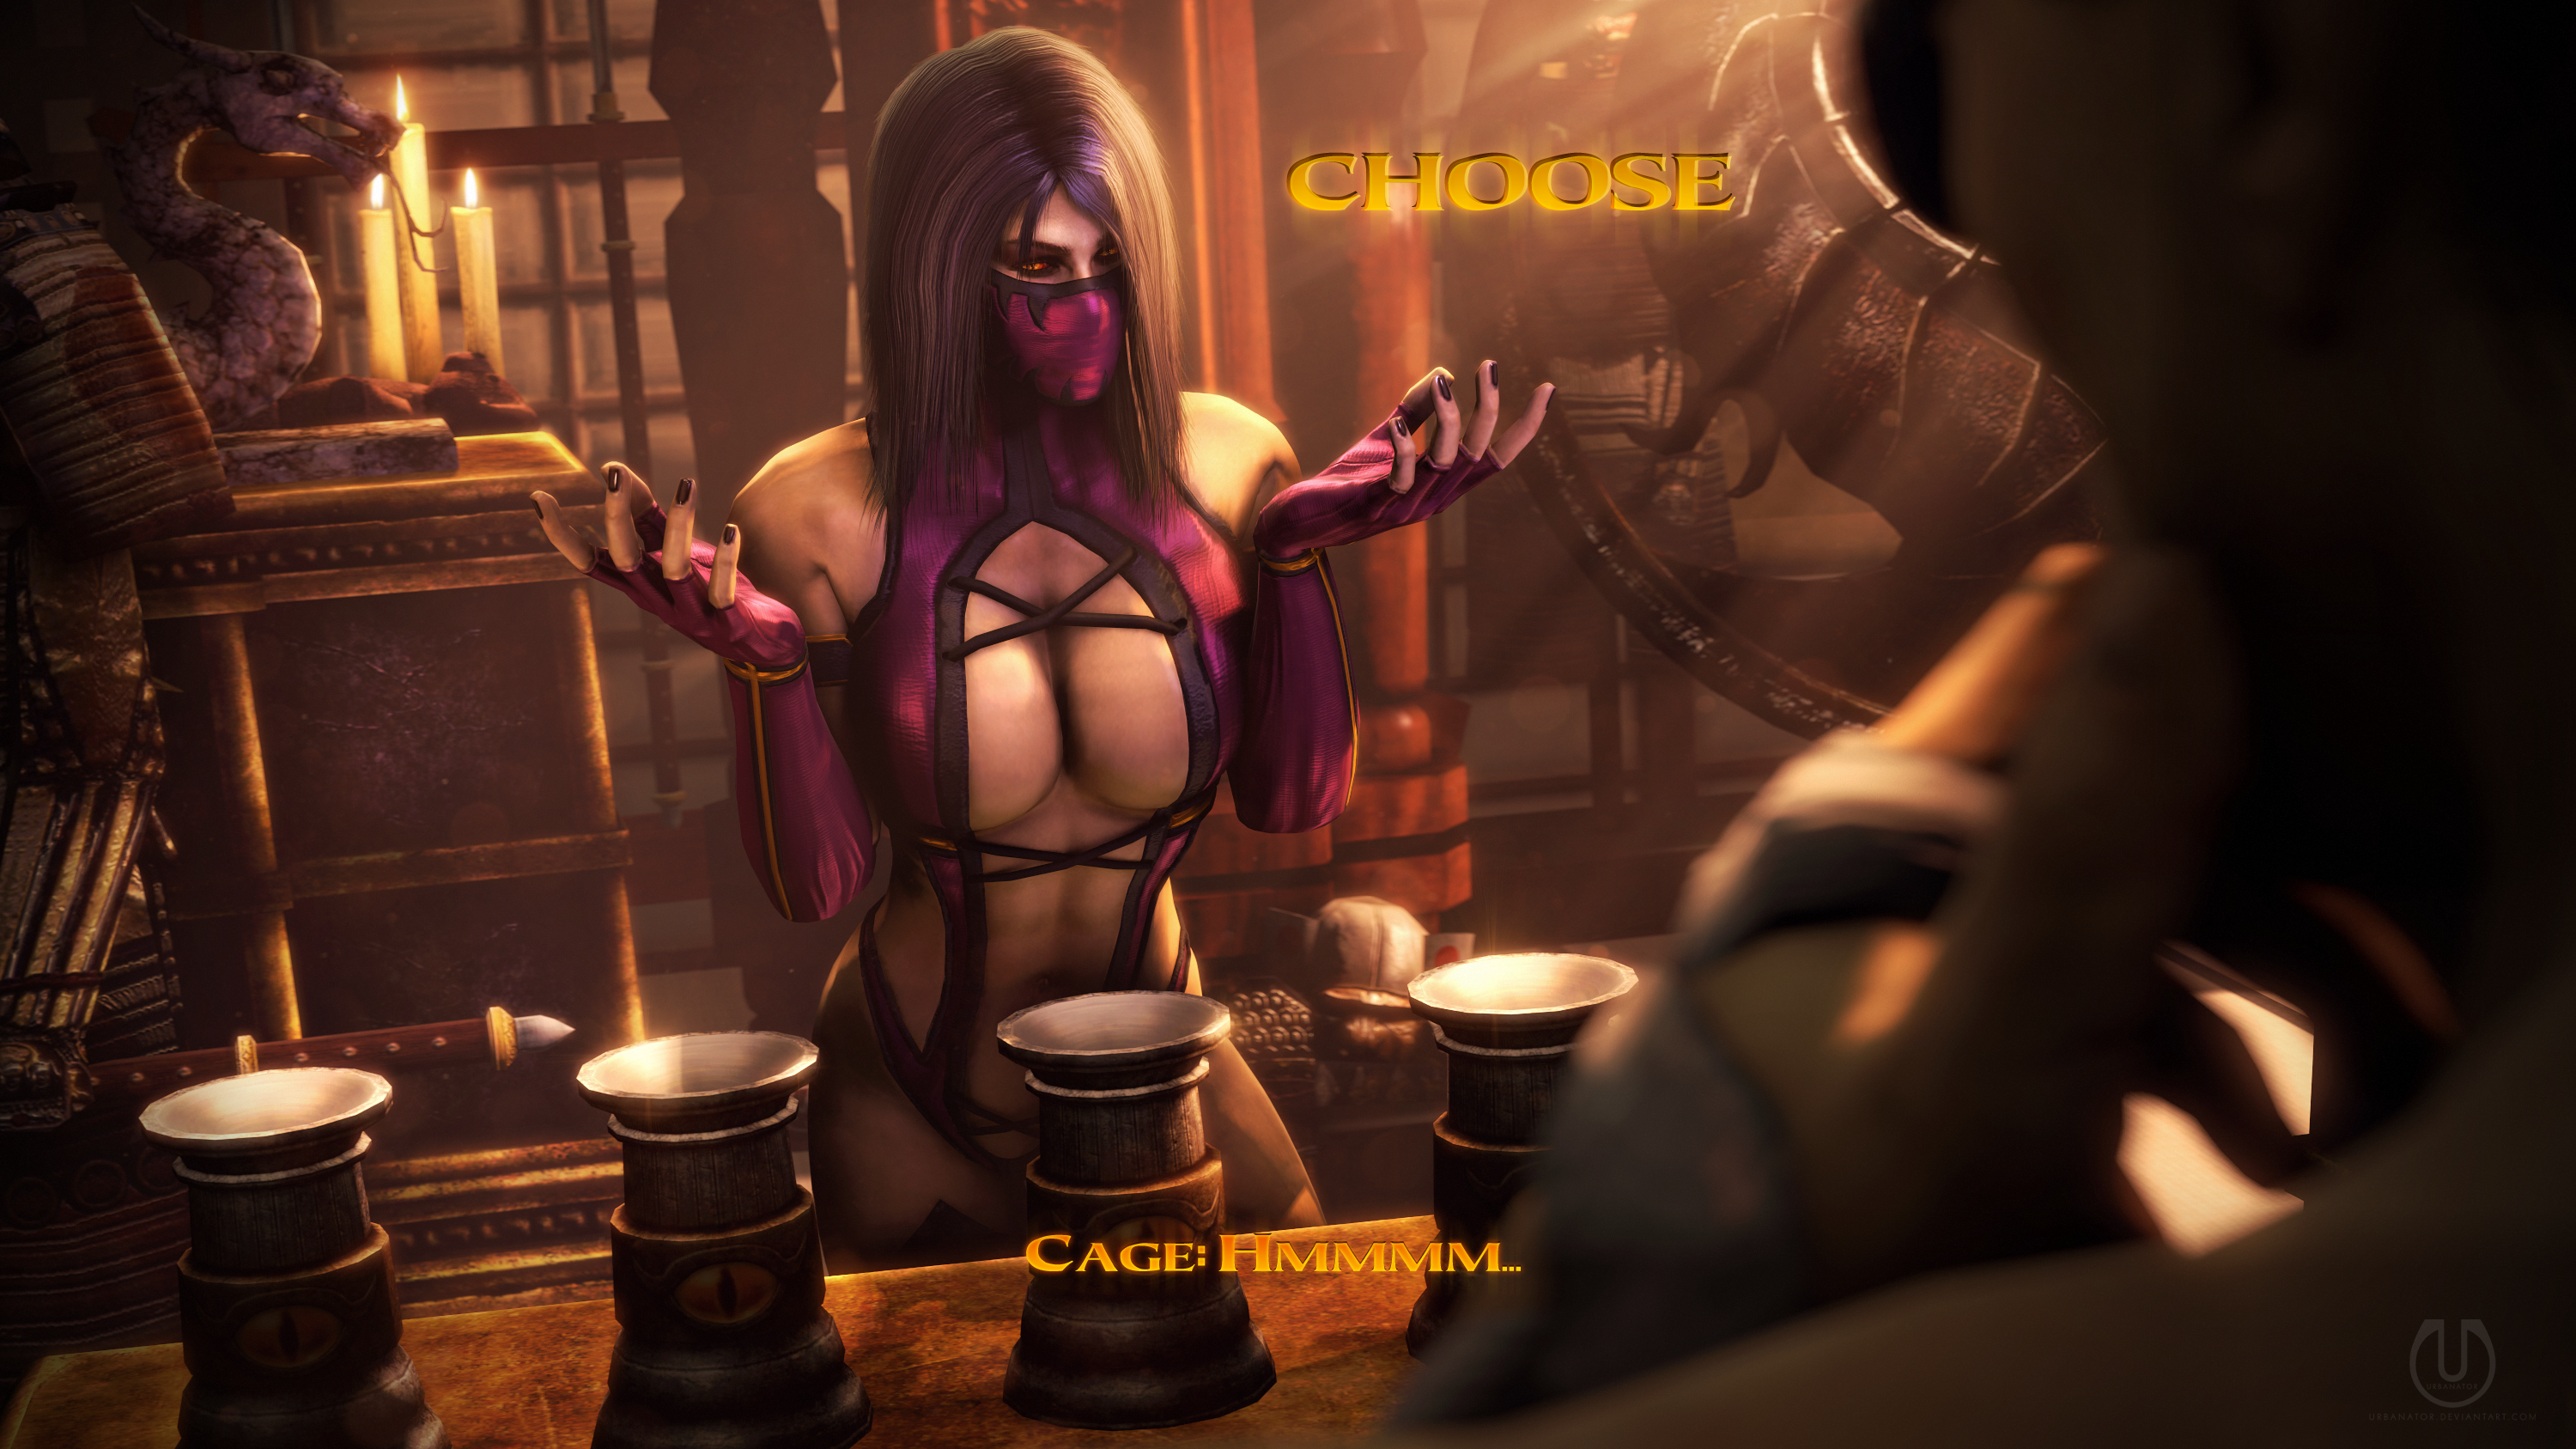 Testing Your Sight With Mileena 5 By Urbanator On Deviantart